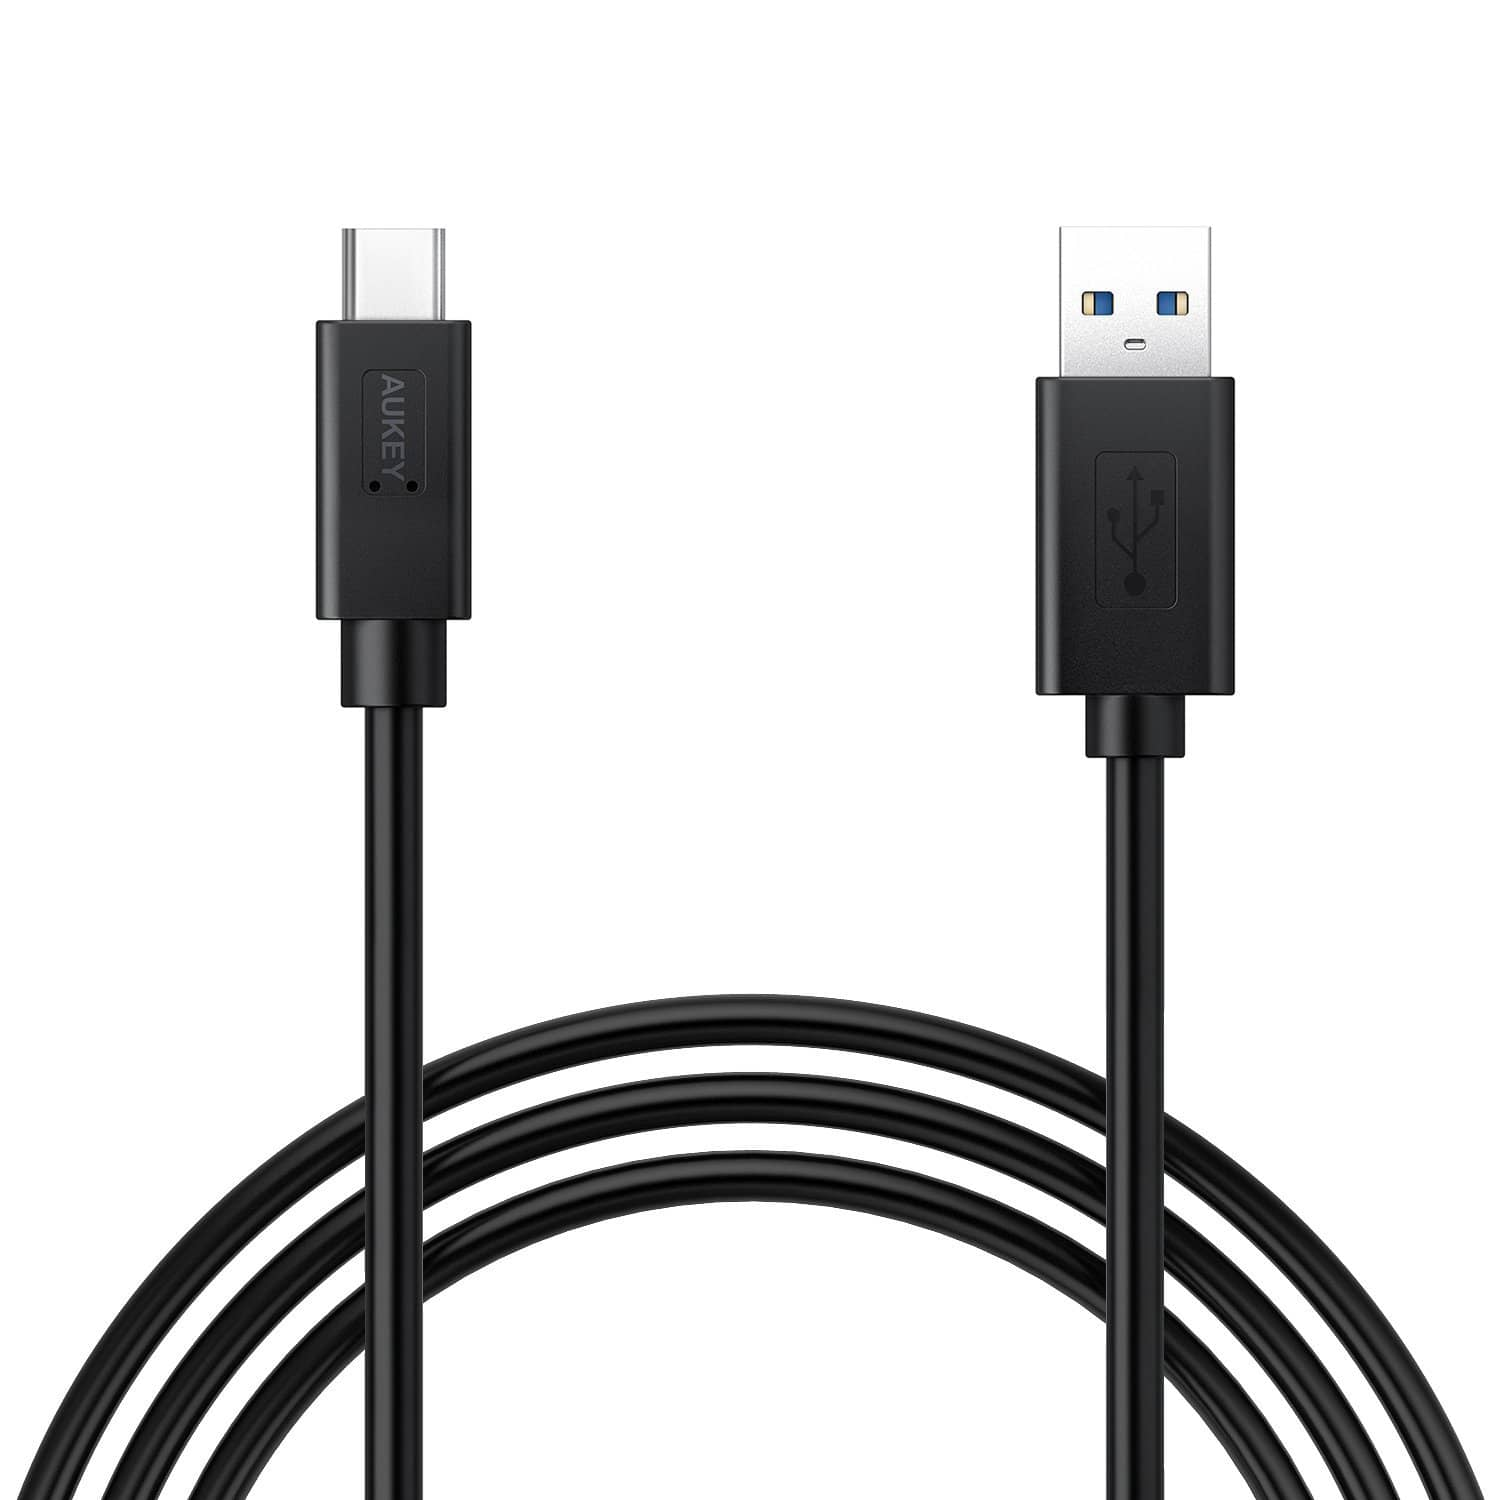 AUKEY USB-C to USB 3.0 Cable 1M for MacBook, ChromeBook (Benson Approved. ‹ ›